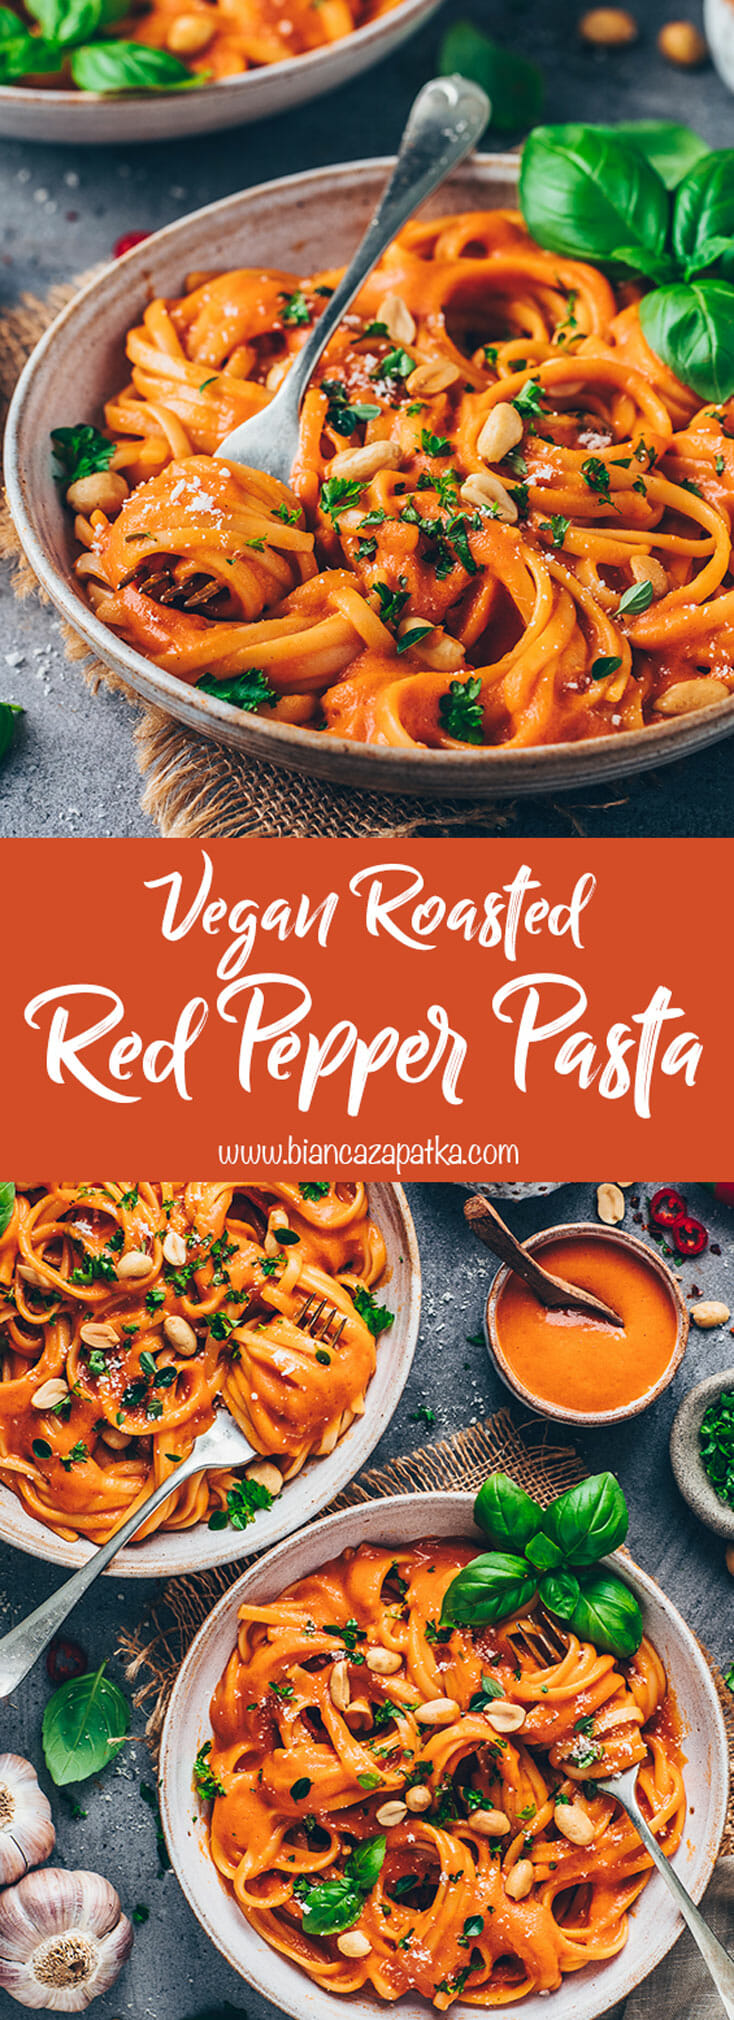 Vegan Roasted Red Pepper Sauce with Fettuccine Pasta, peanuts and basil